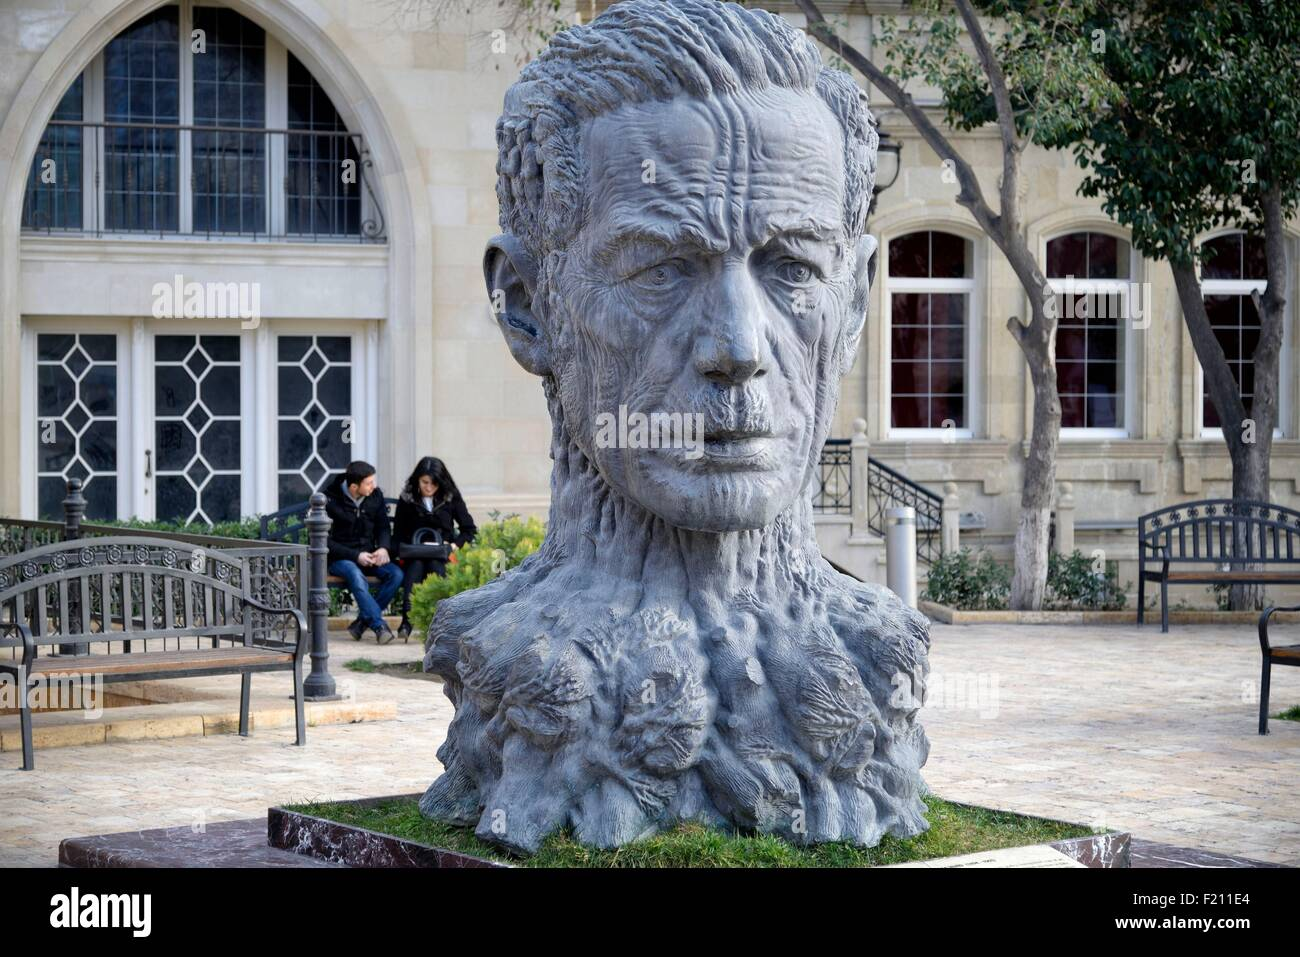 Azerbaijan, Baku, the Old City (Old Town, Ichari Shahar) listed as World Heritage by UNESCO, sculpture in a park - Stock Image